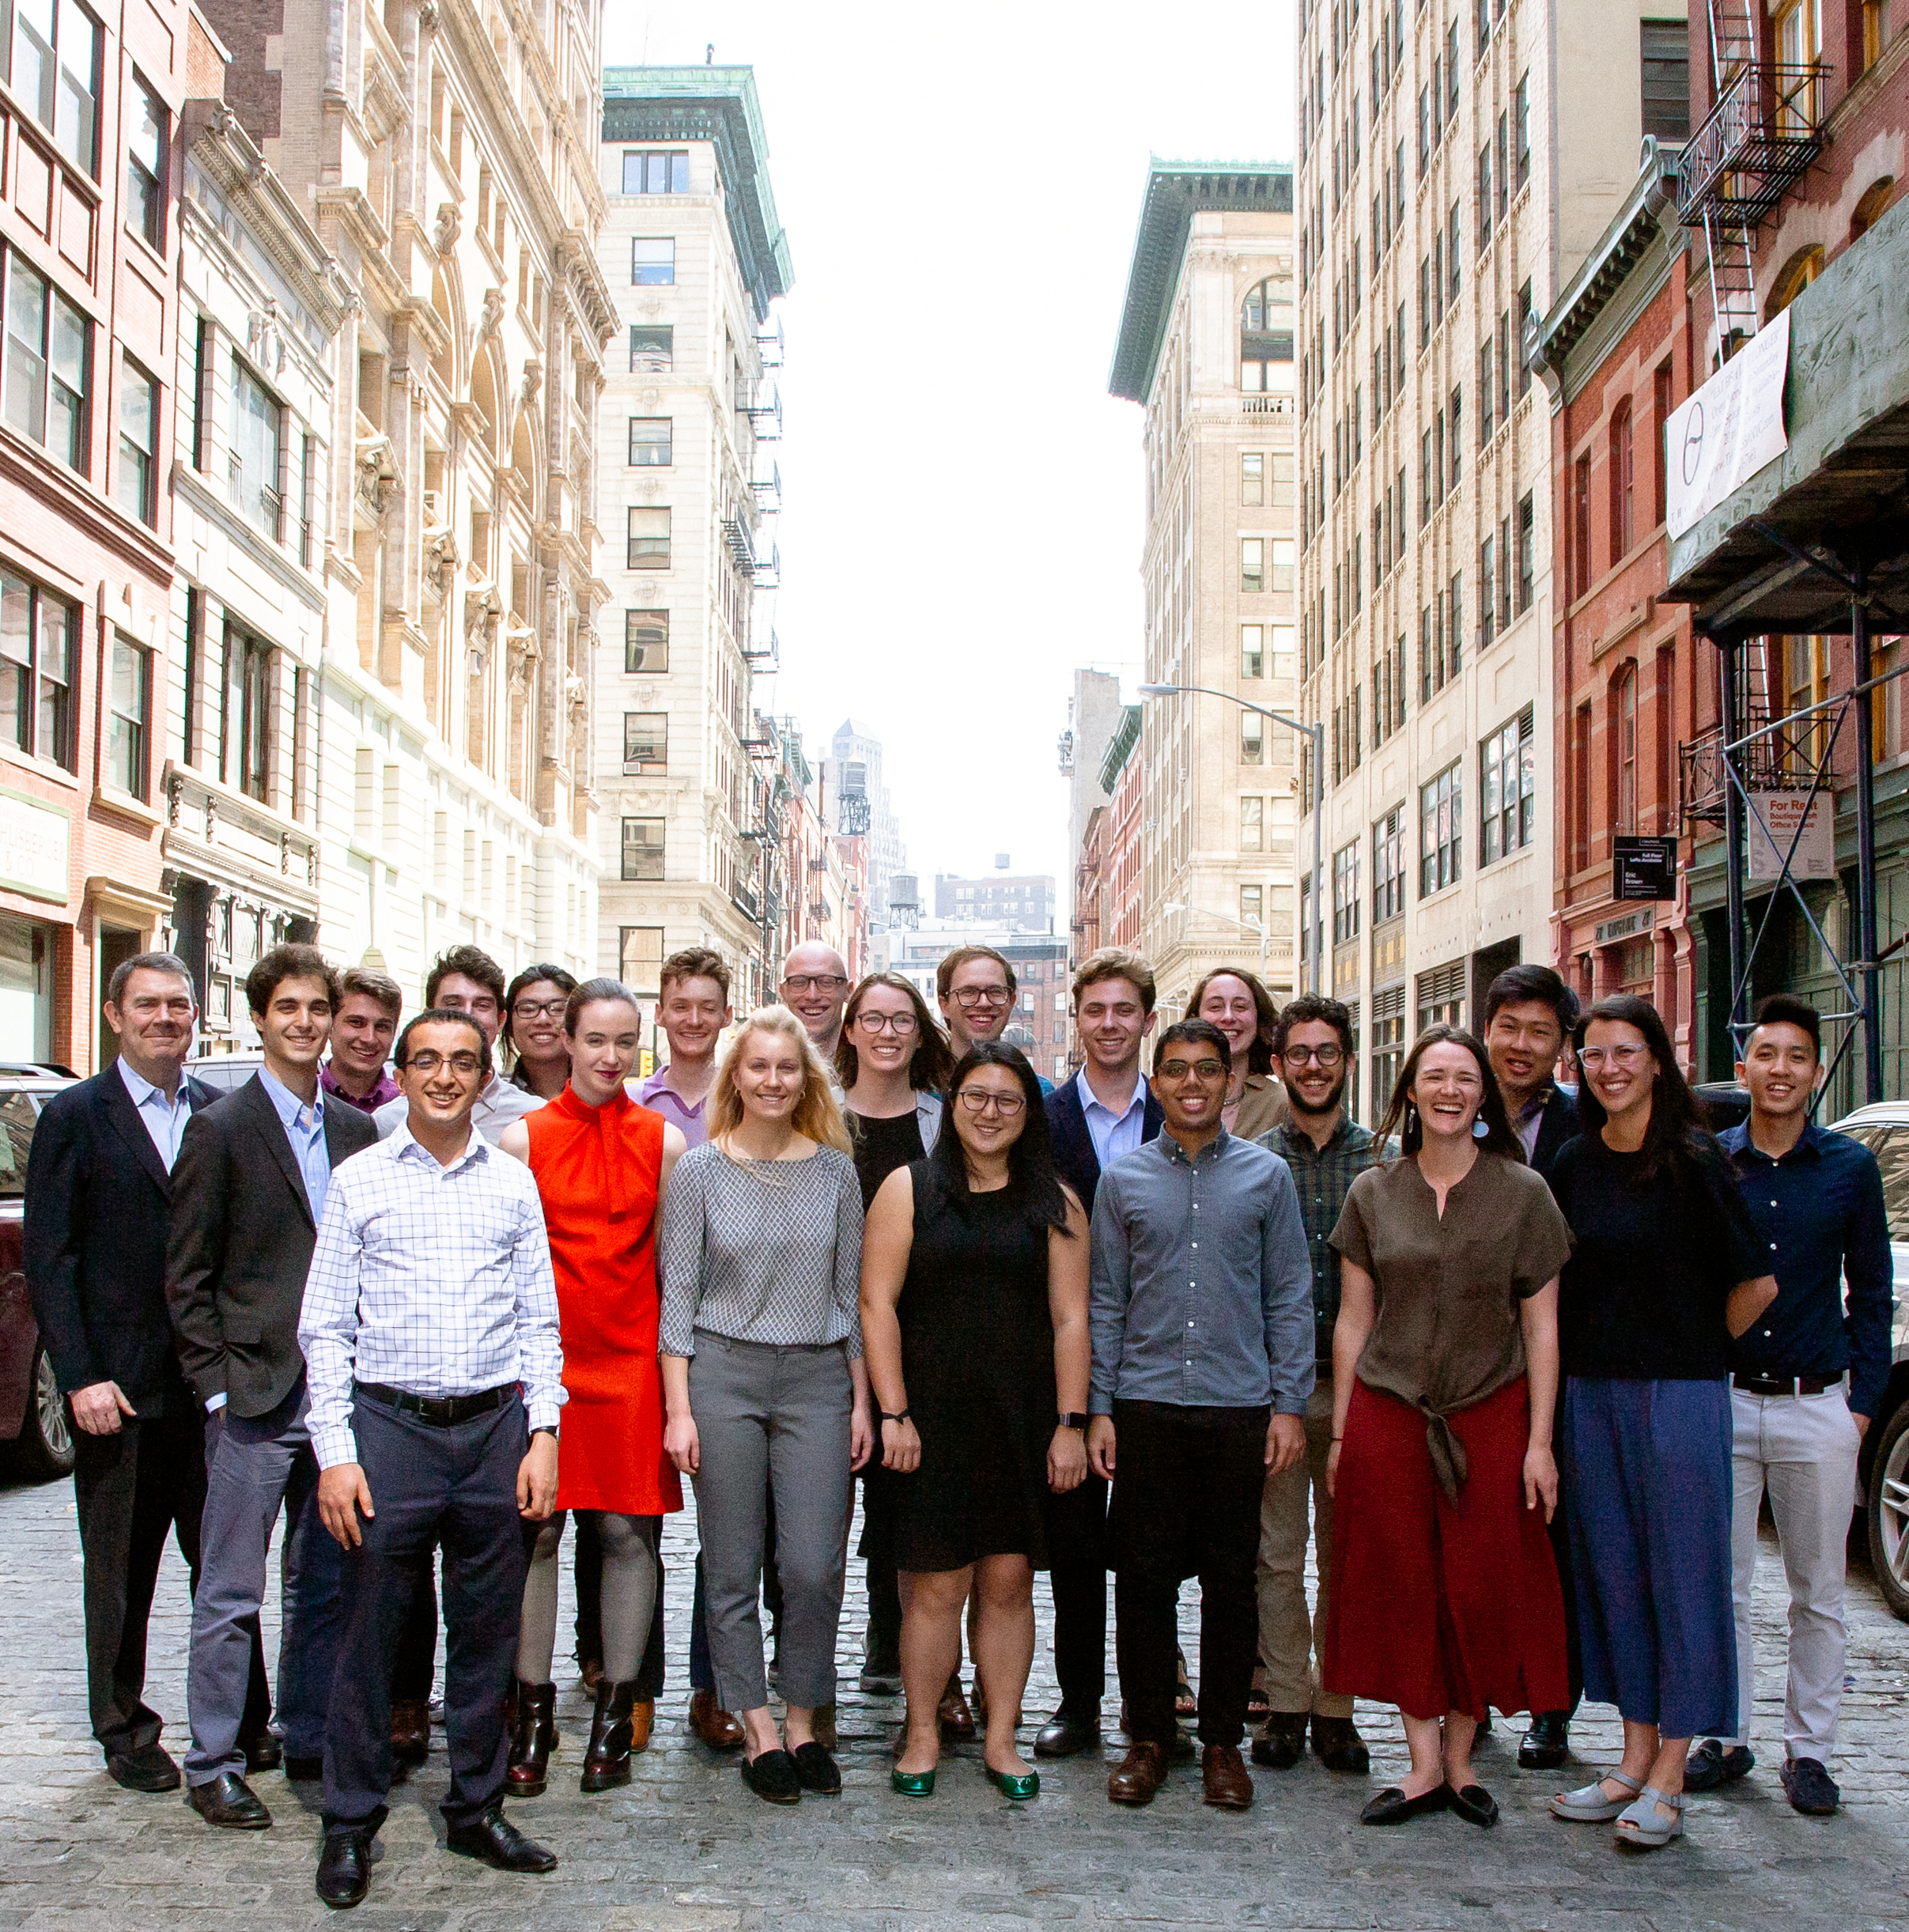 Locus employees standing in Manhattan street.